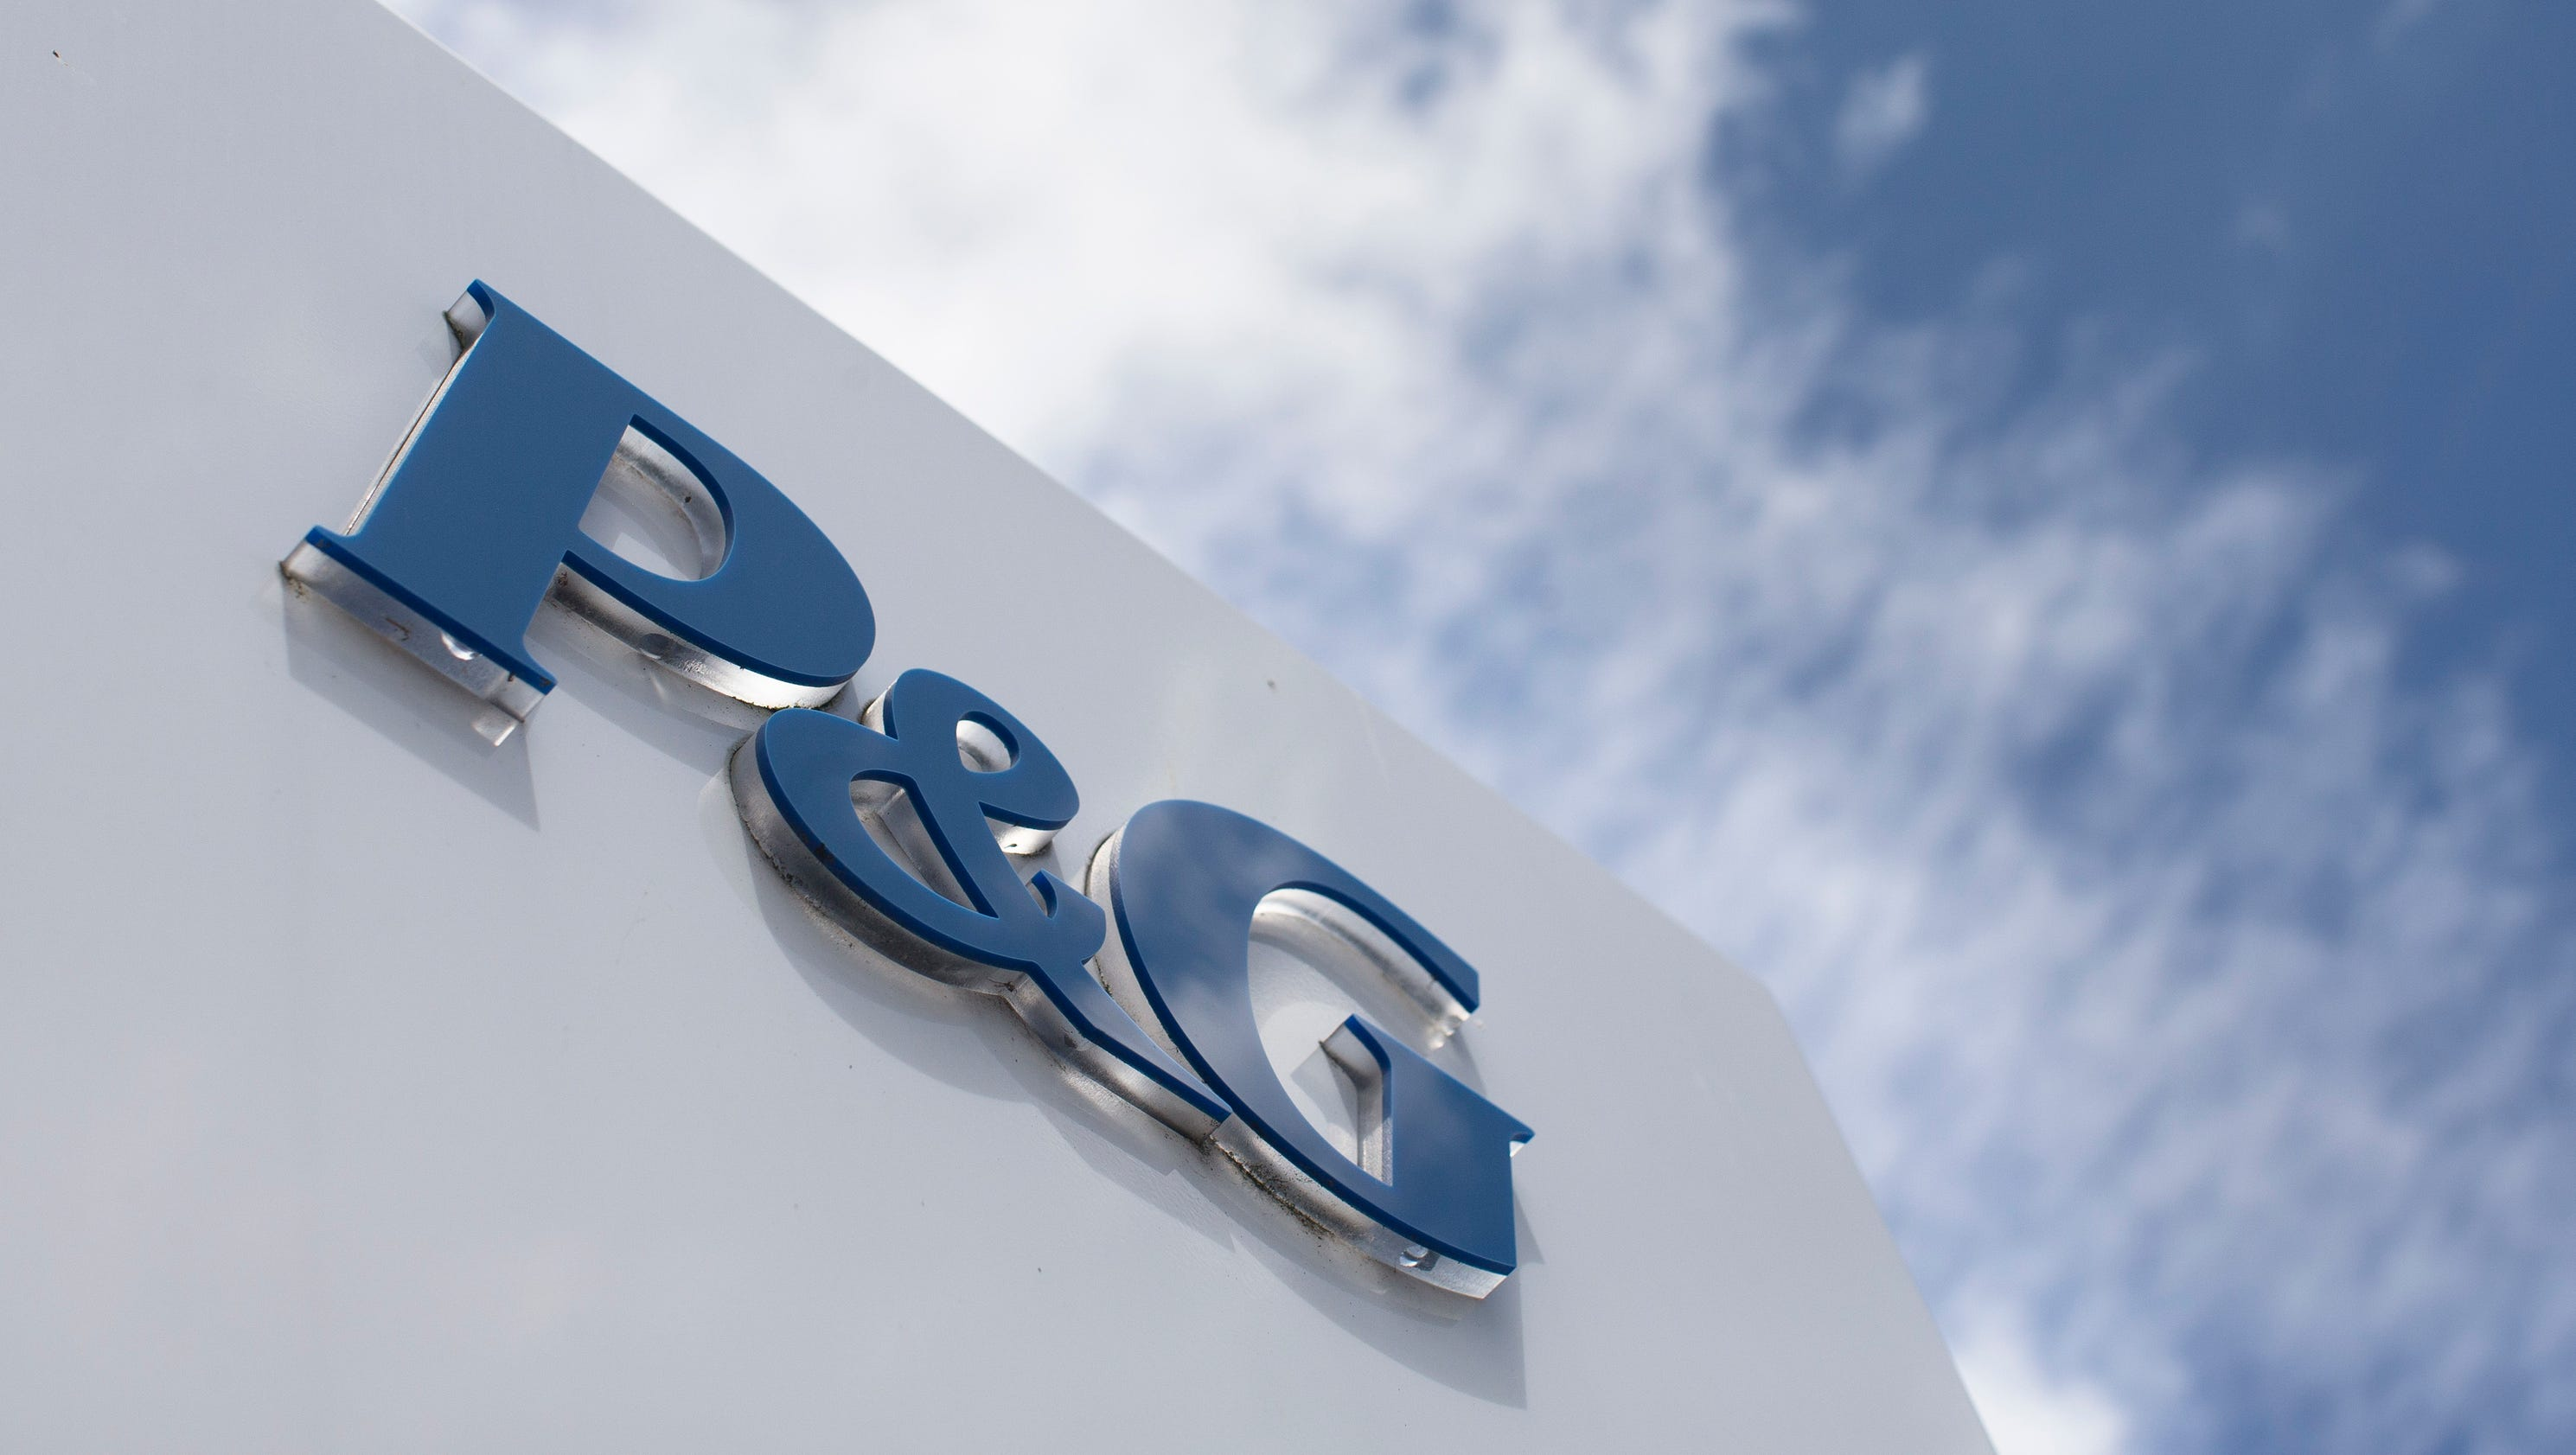 Procter & Gamble Stock Quote How To Get P&g's Stock Above $100 Per Share